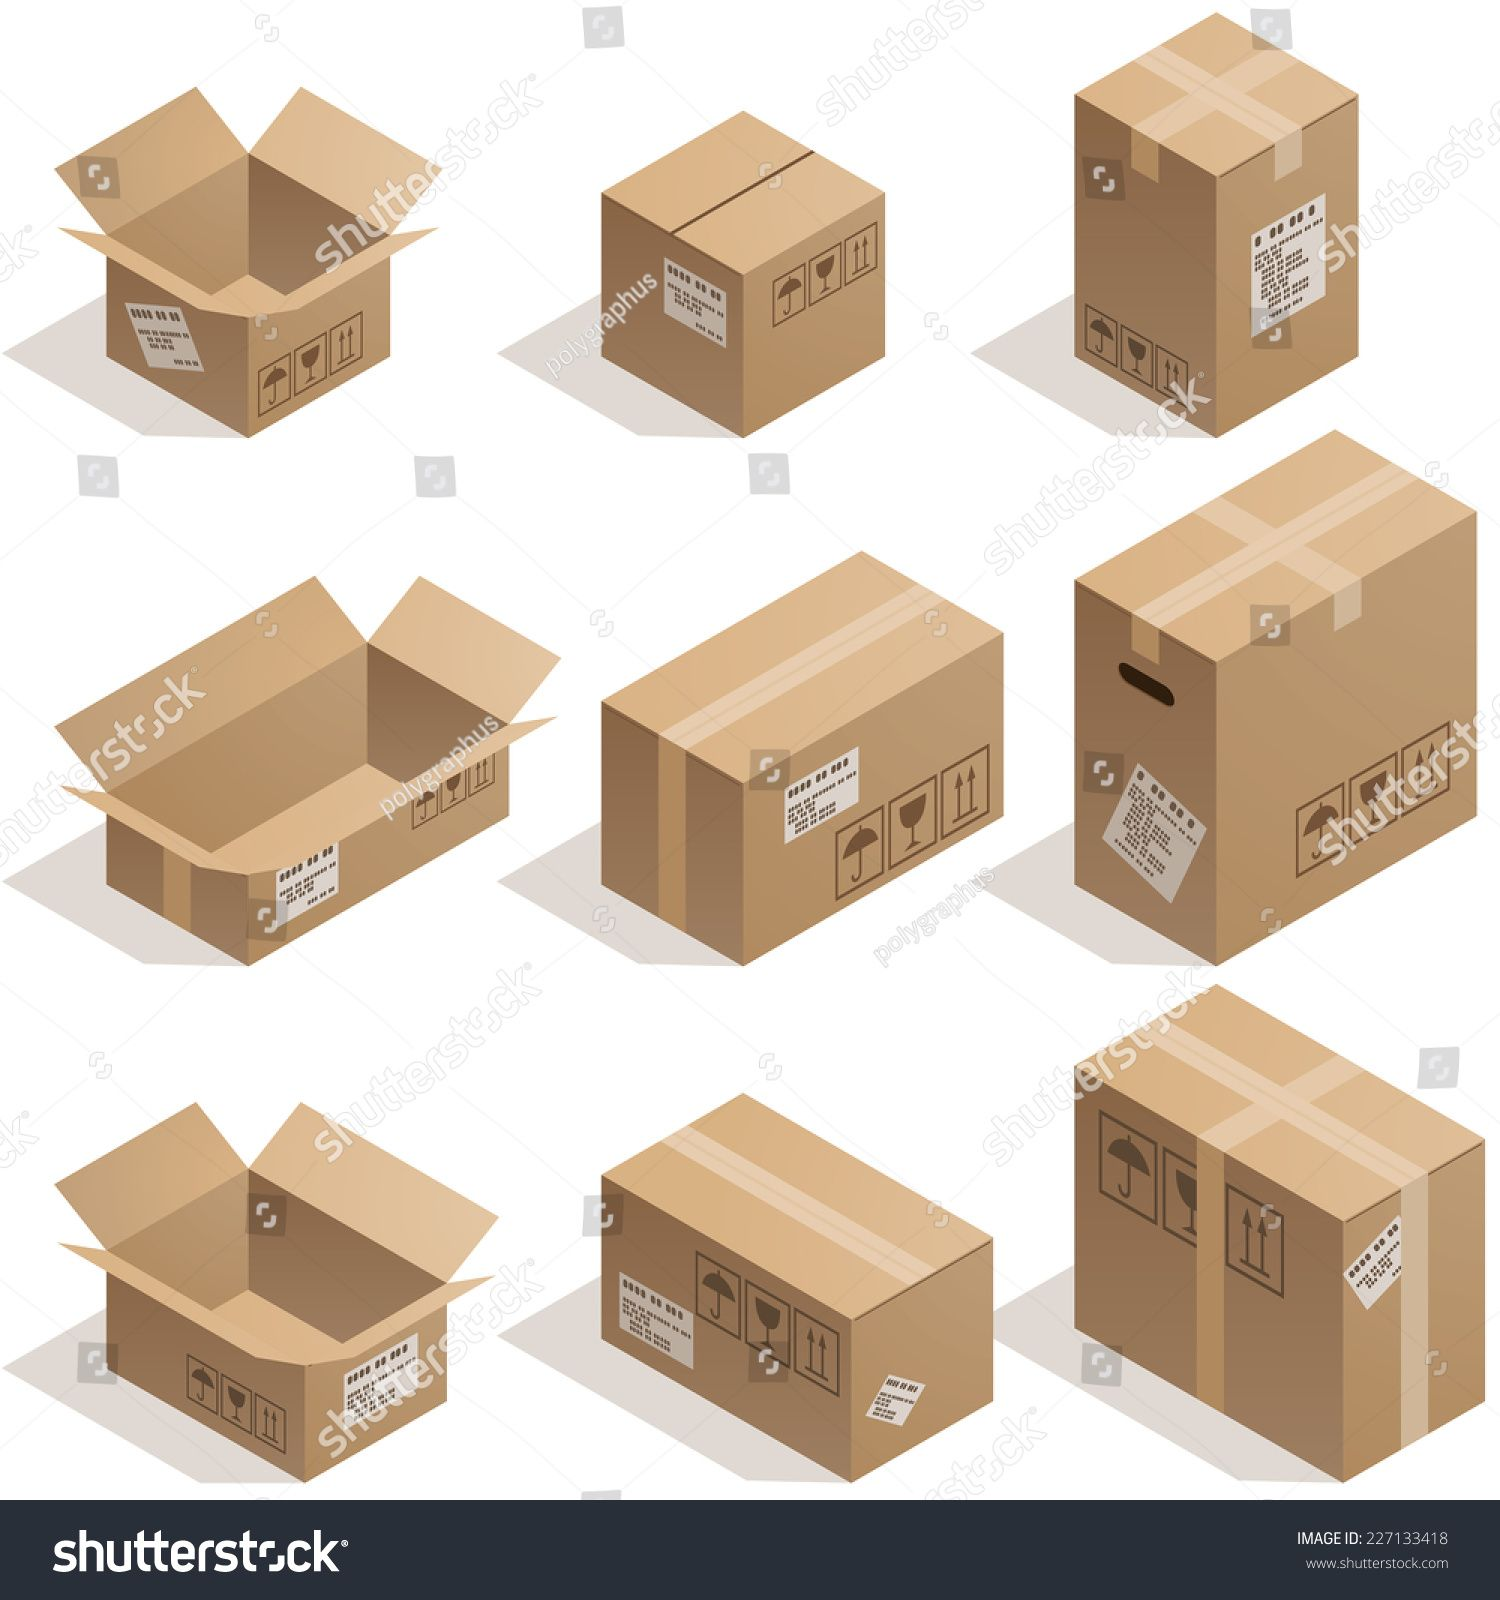 Set Of Nine Isometric Cardboard Boxes Isolated On White Eps8 Cmyk Organized By Layers Global Colors Gradien In 2020 Isometric Isometric Illustration Cardboard Box